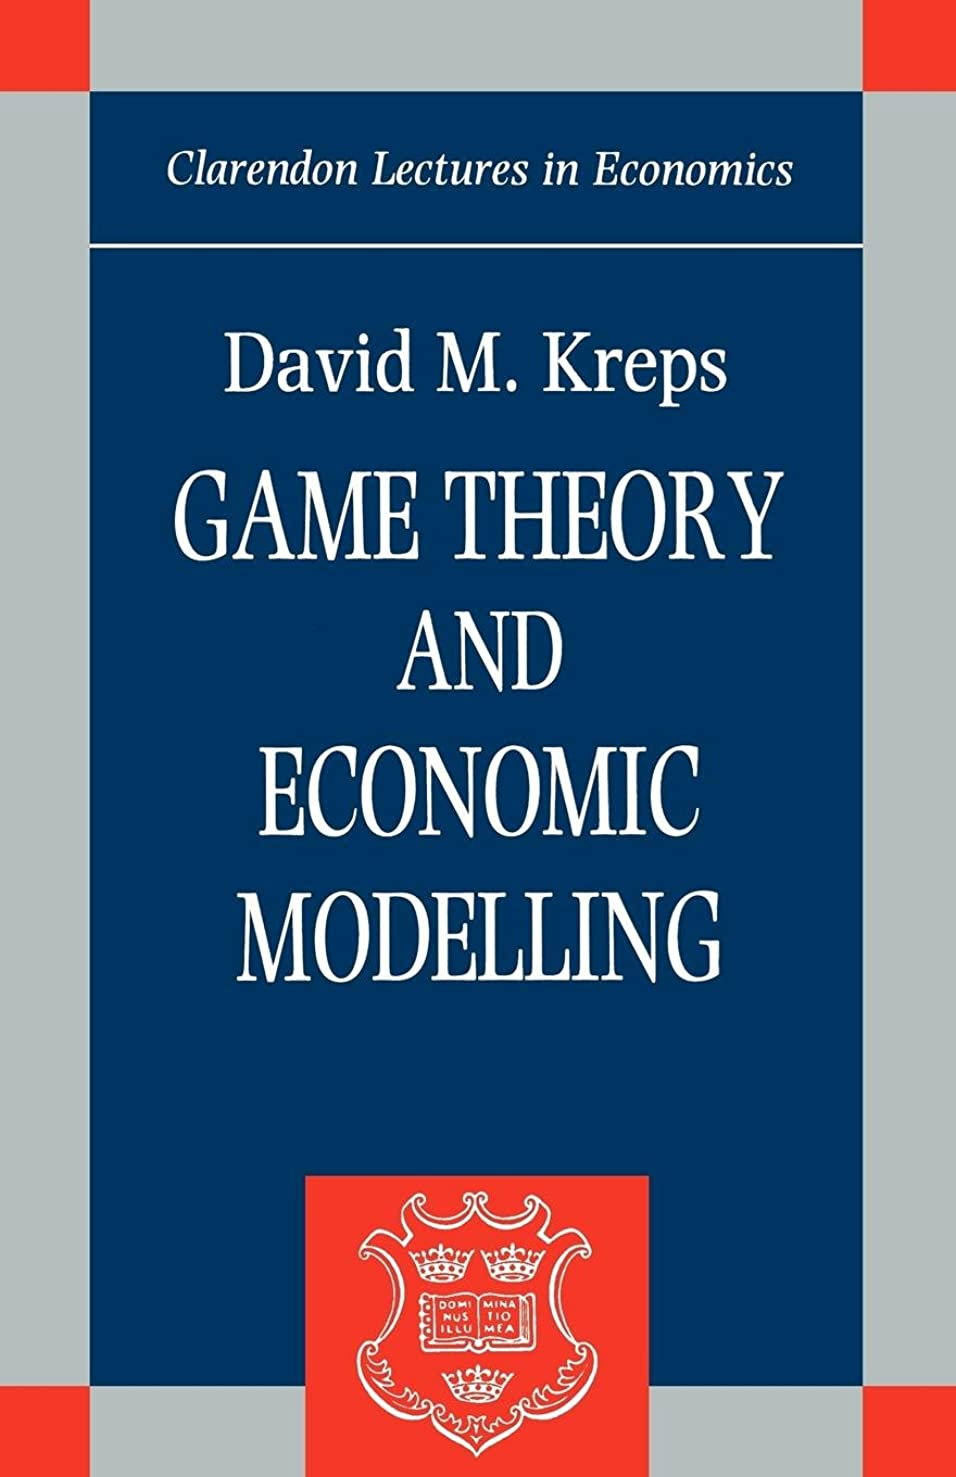 Game Theory and Economic Modelling (Clarendon Lectures in Economics)